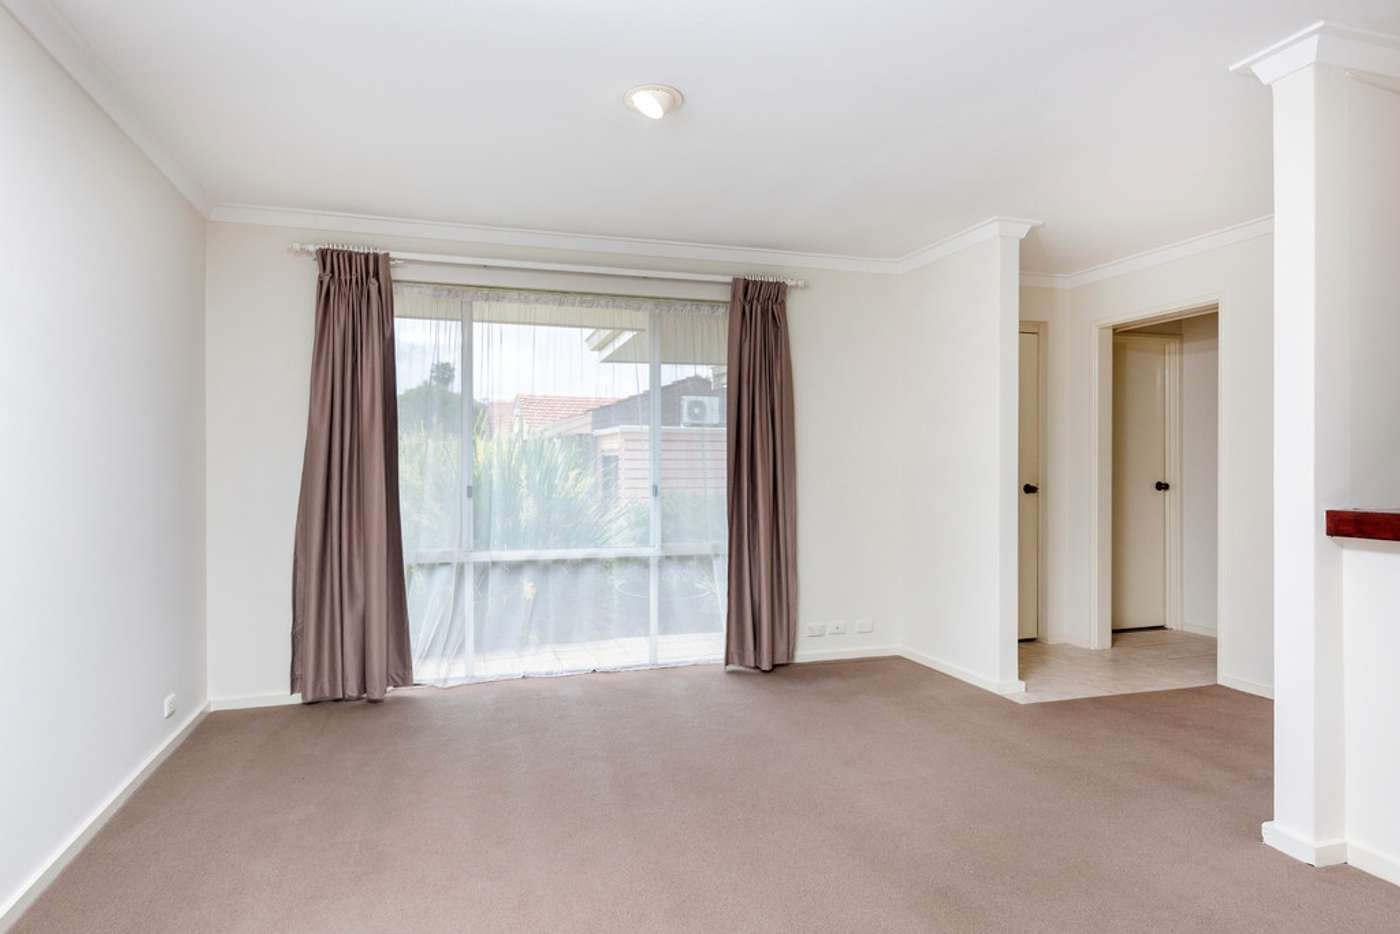 Sixth view of Homely villa listing, 5/11 Anstey Street, South Perth WA 6151